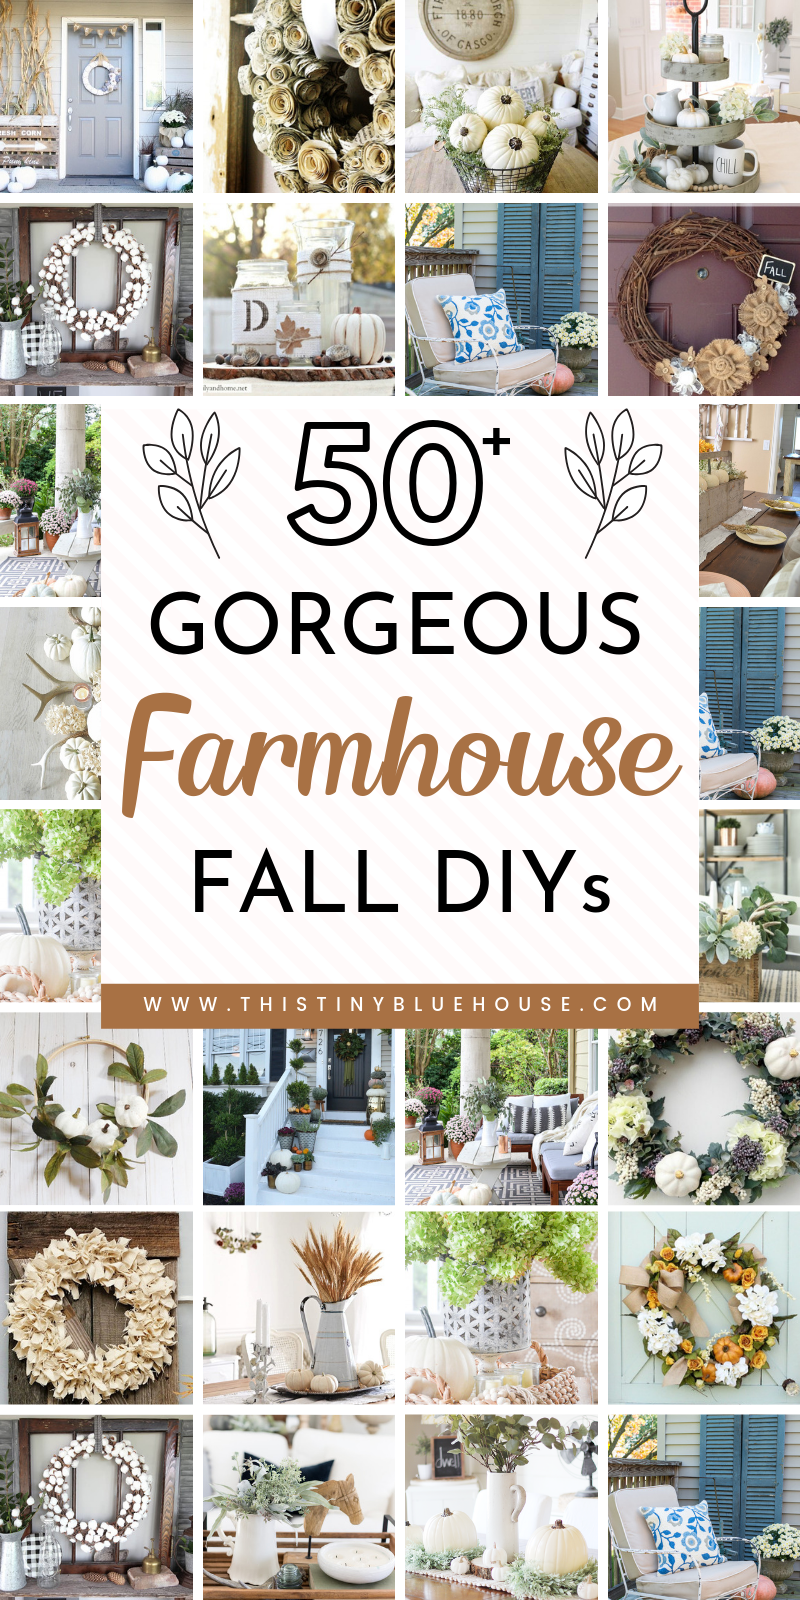 60 Ultimate Best DIY Farmhouse Fall Decor Ideas - This Tiny Blue House #falldecorideasfortheporch